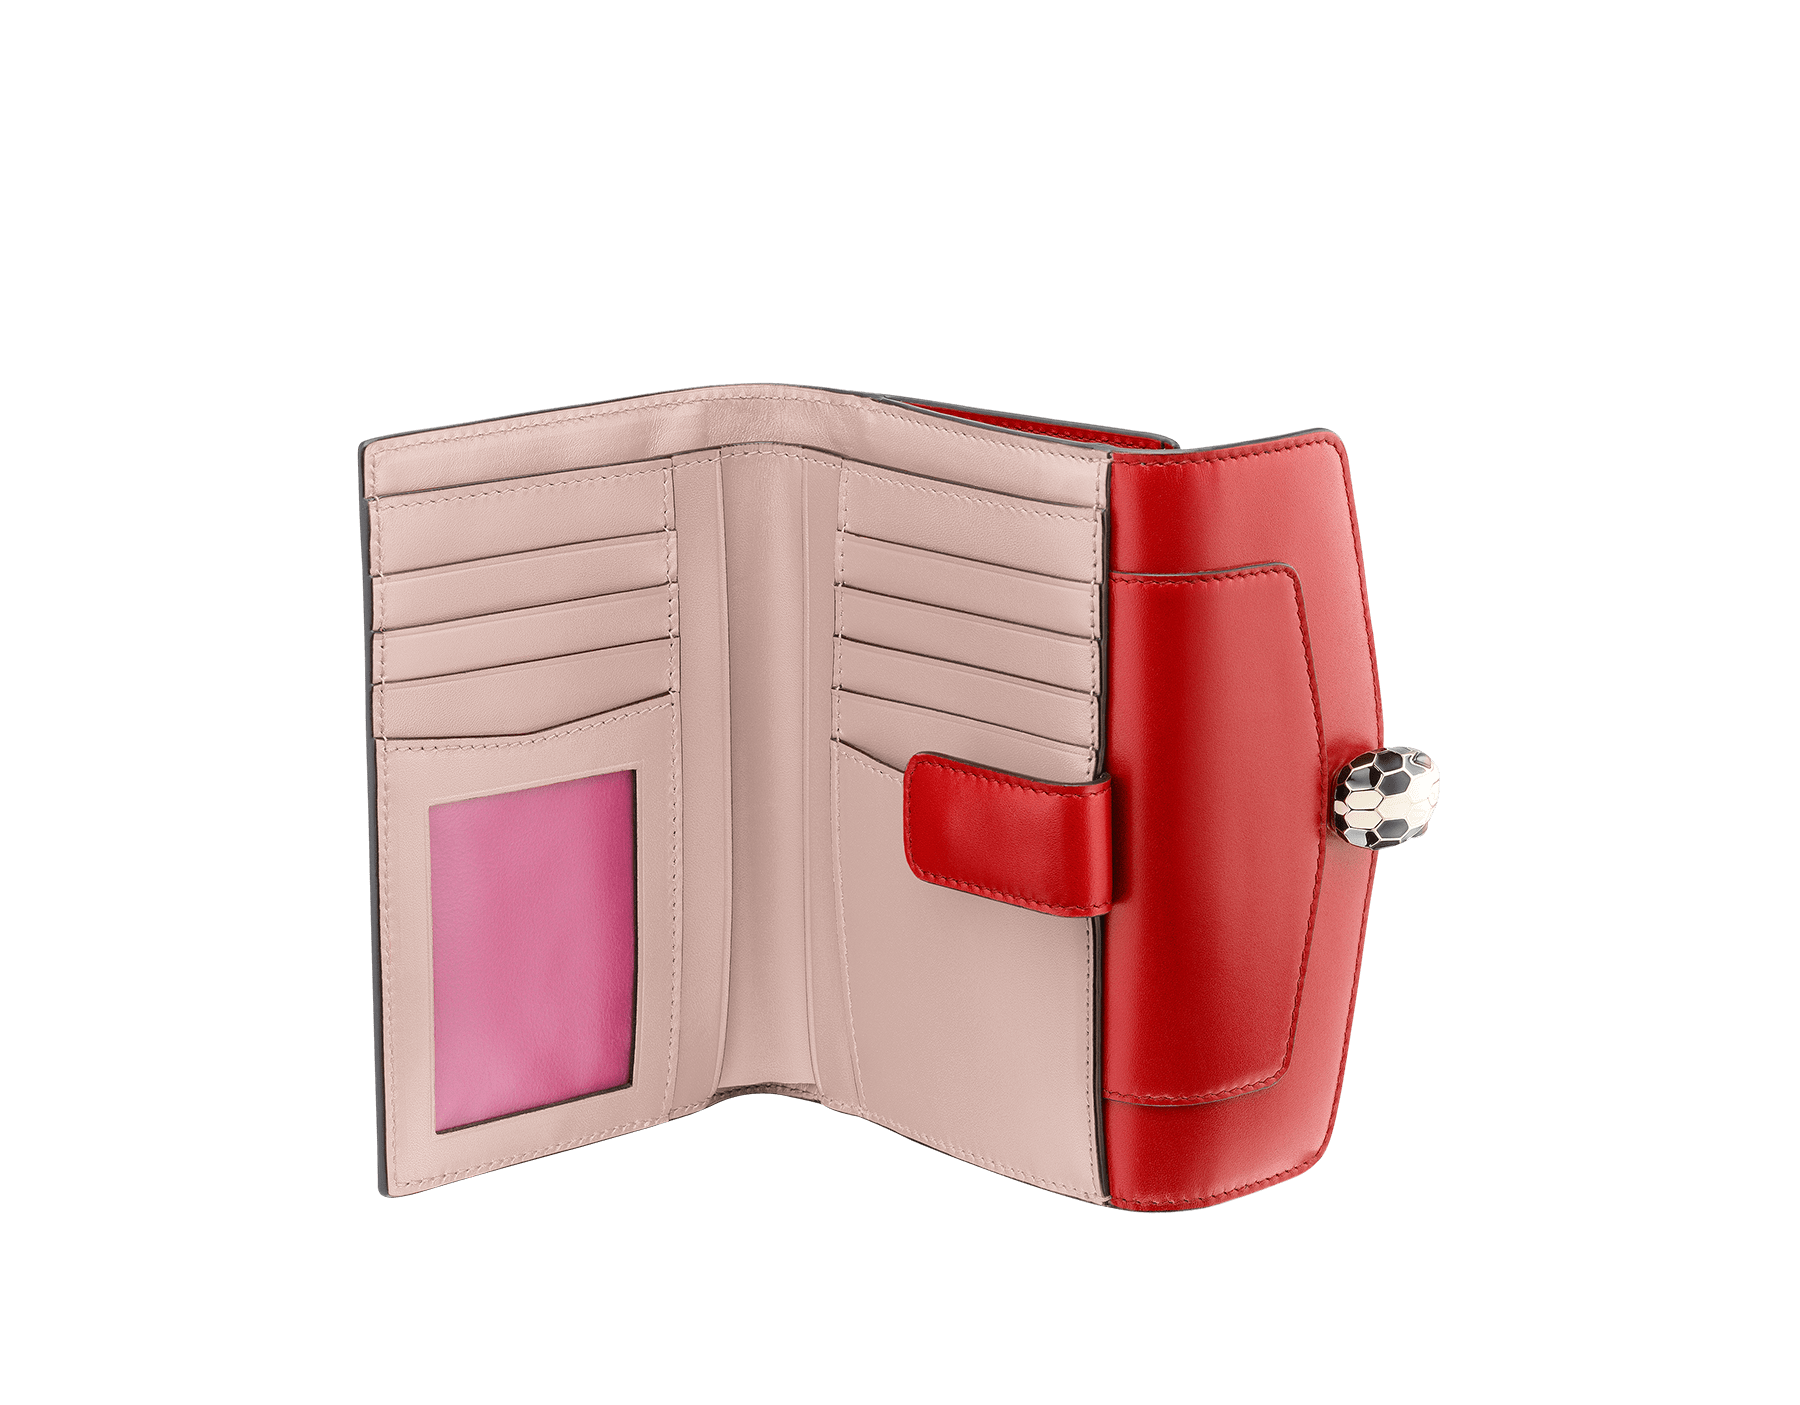 Compact pochette in ruby red calf leather, desert quartz calf leather and fuxia nappa lining. Brass light gold plated Serpenti head stud closure with green malachite eyes. 282666 image 2